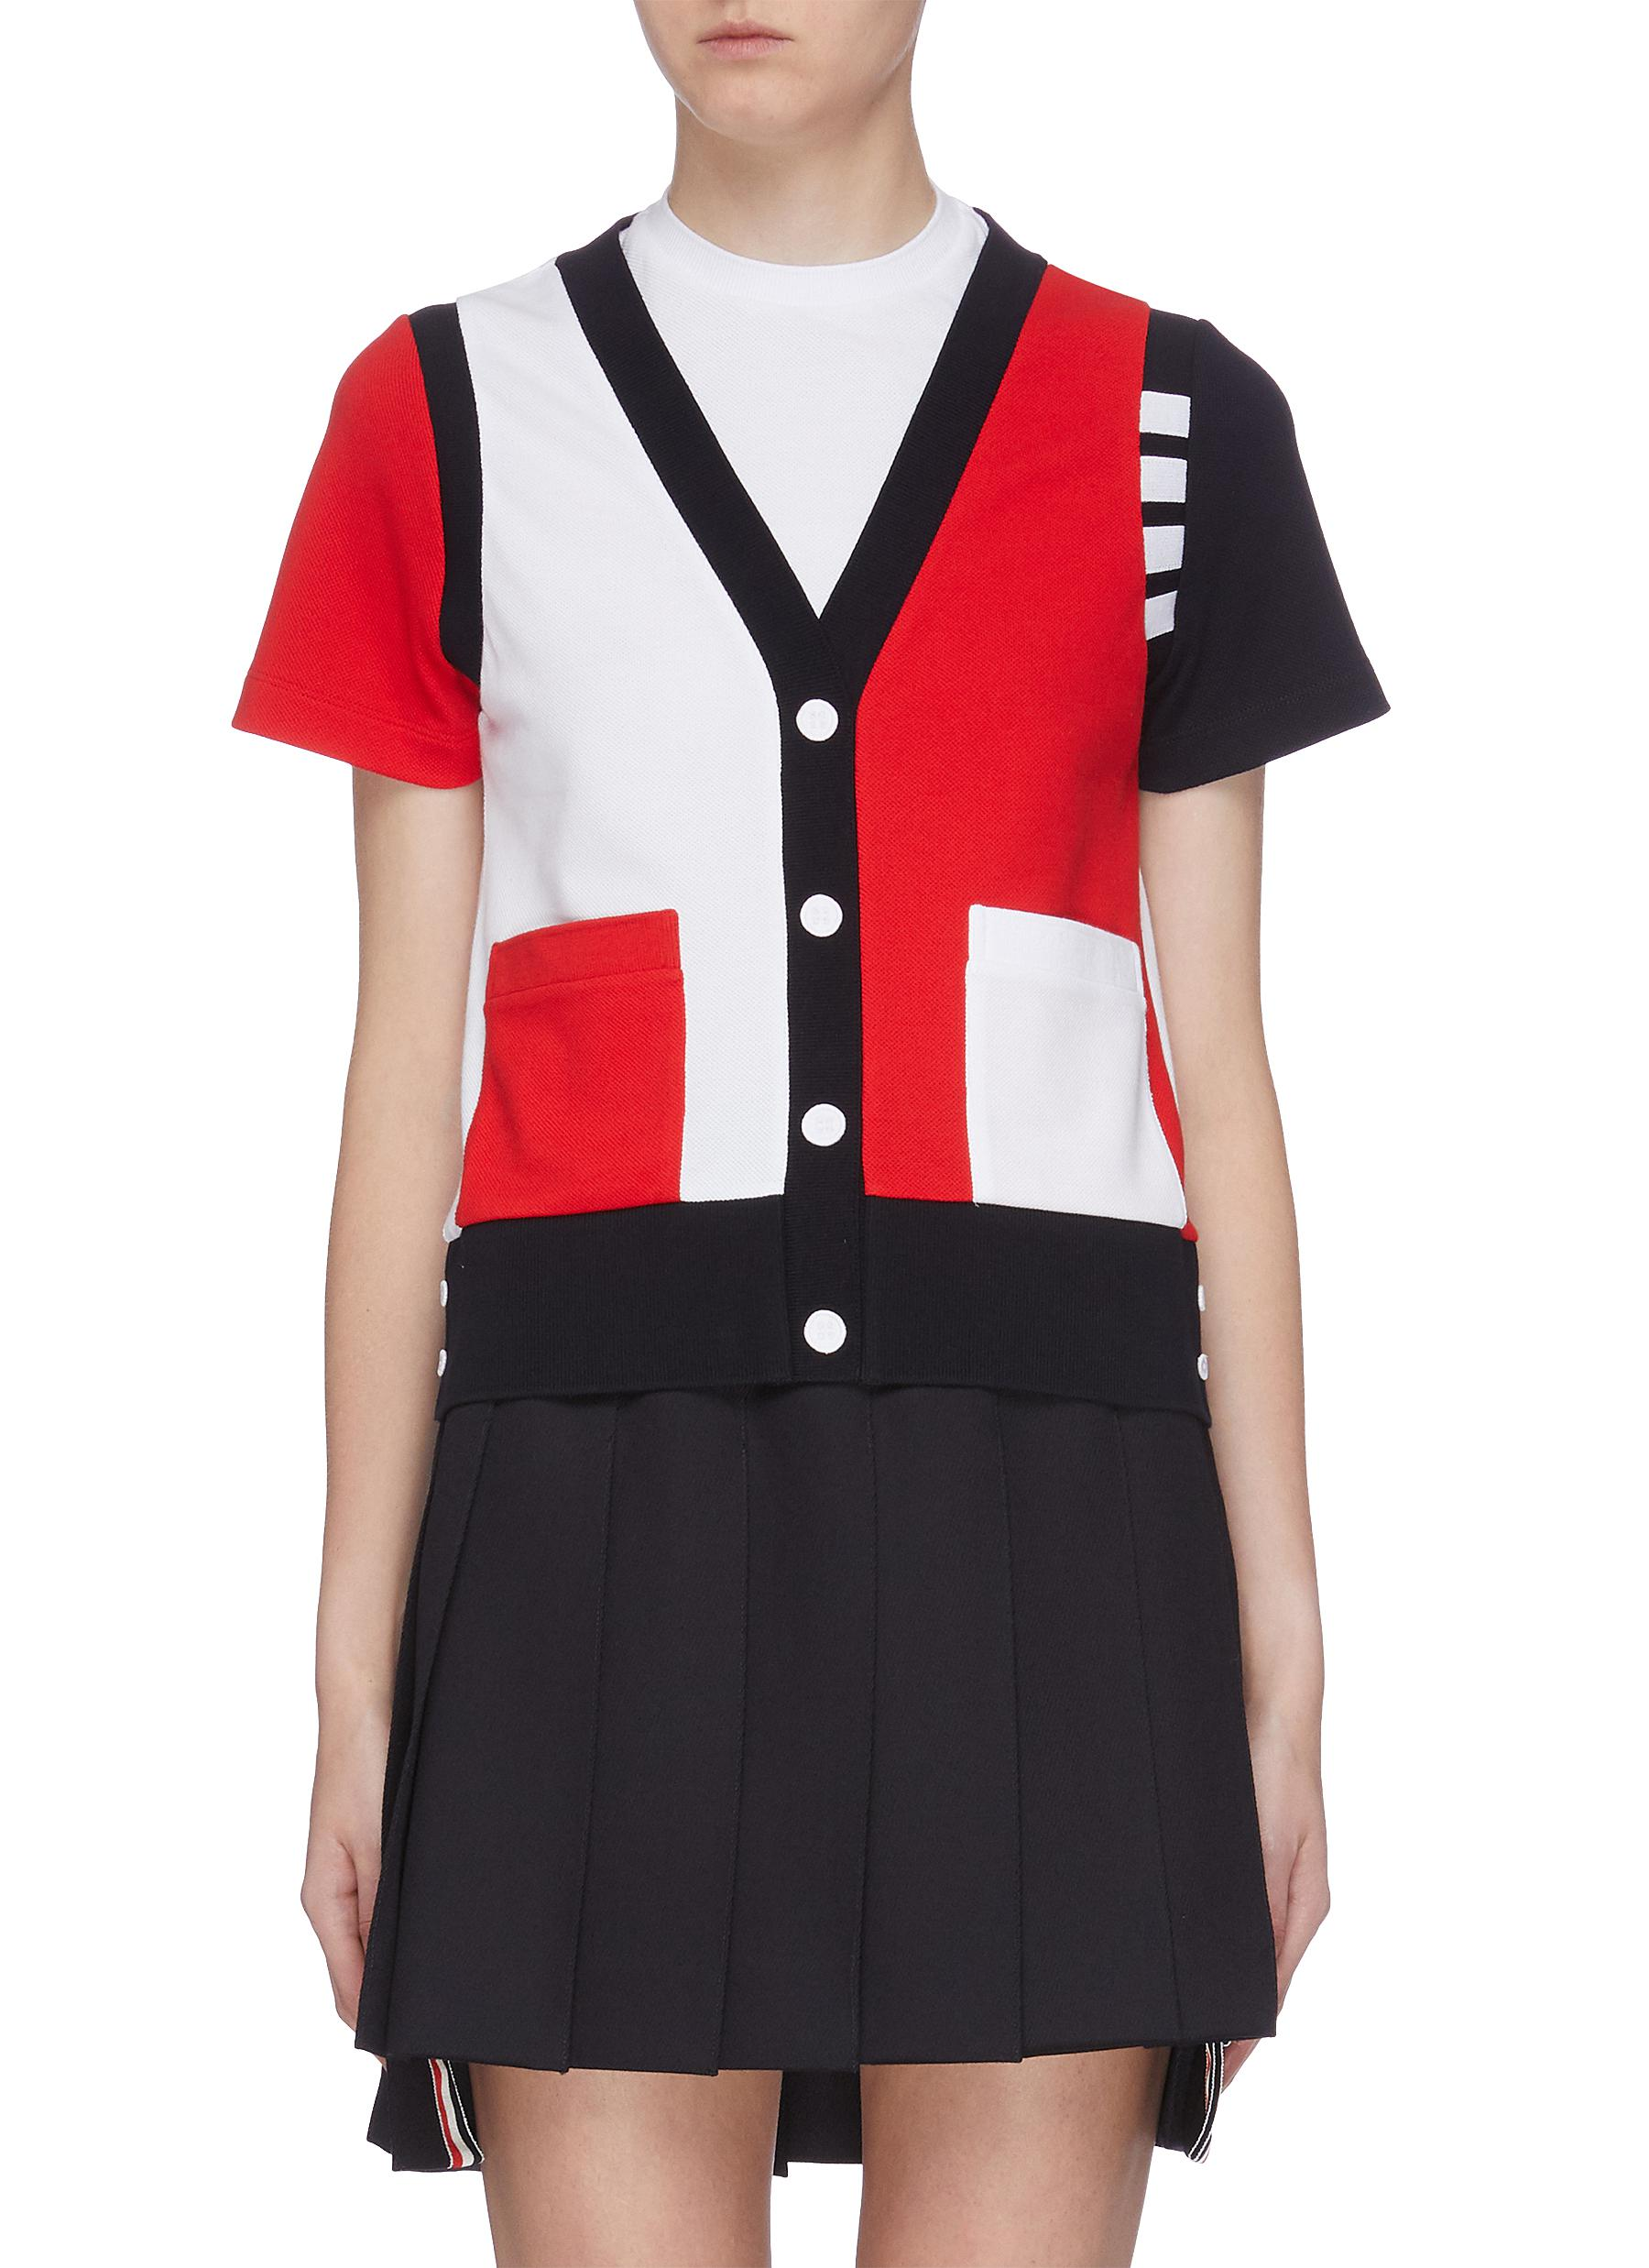 Colourblock button T-shirt by Thom Browne